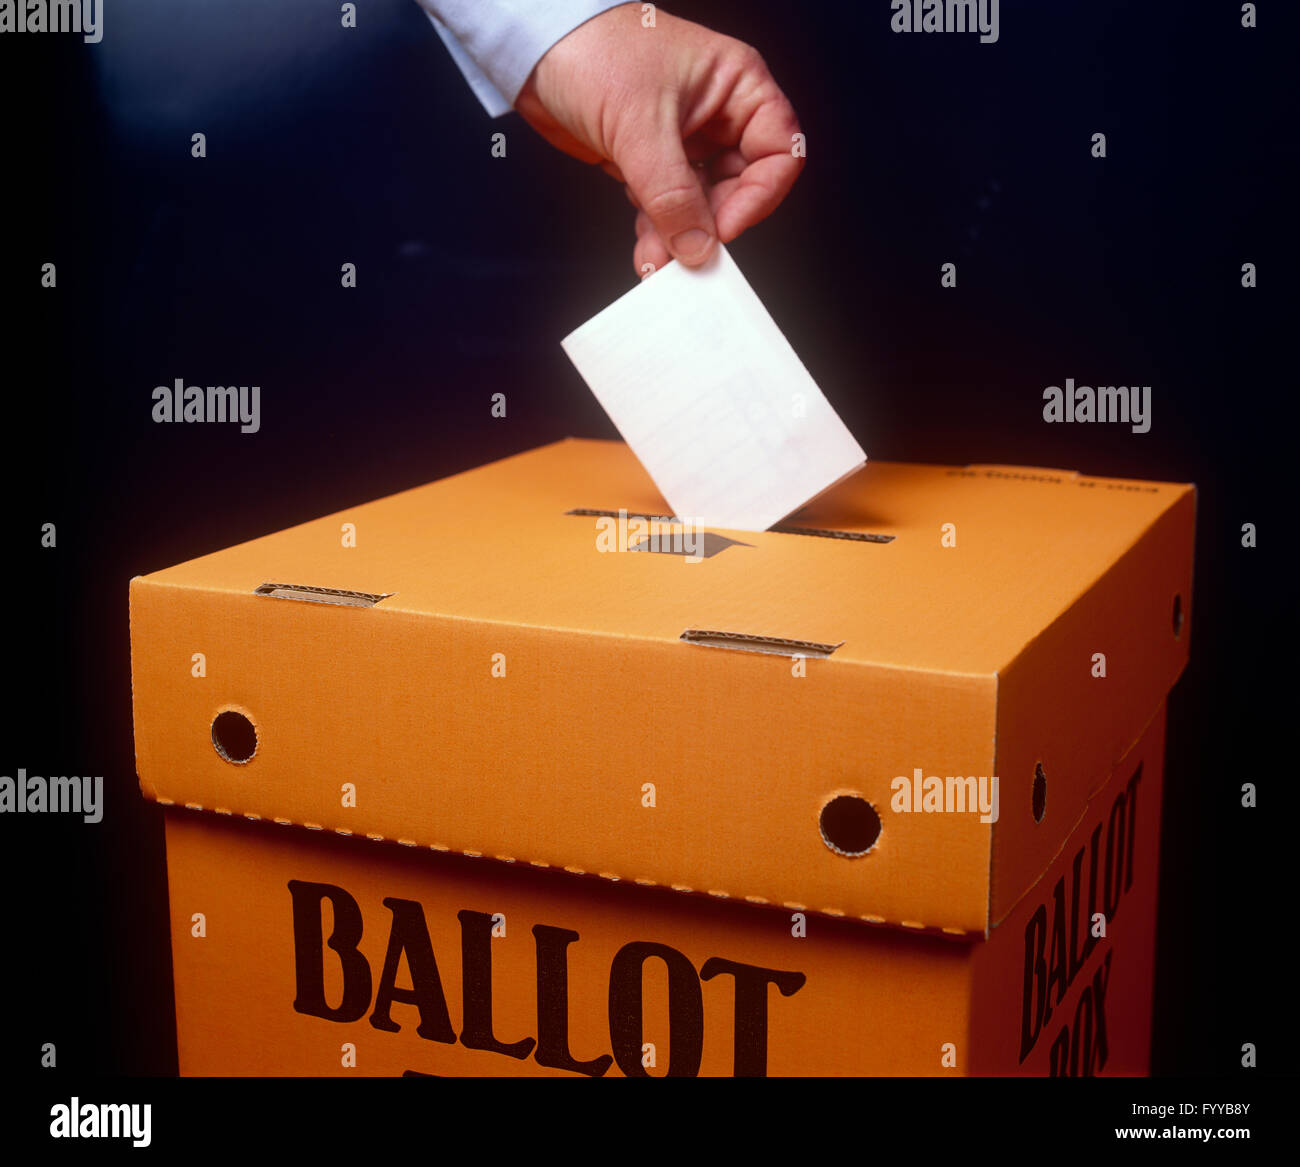 Voting paper being placed into a Ballot box, inside. - Stock Image